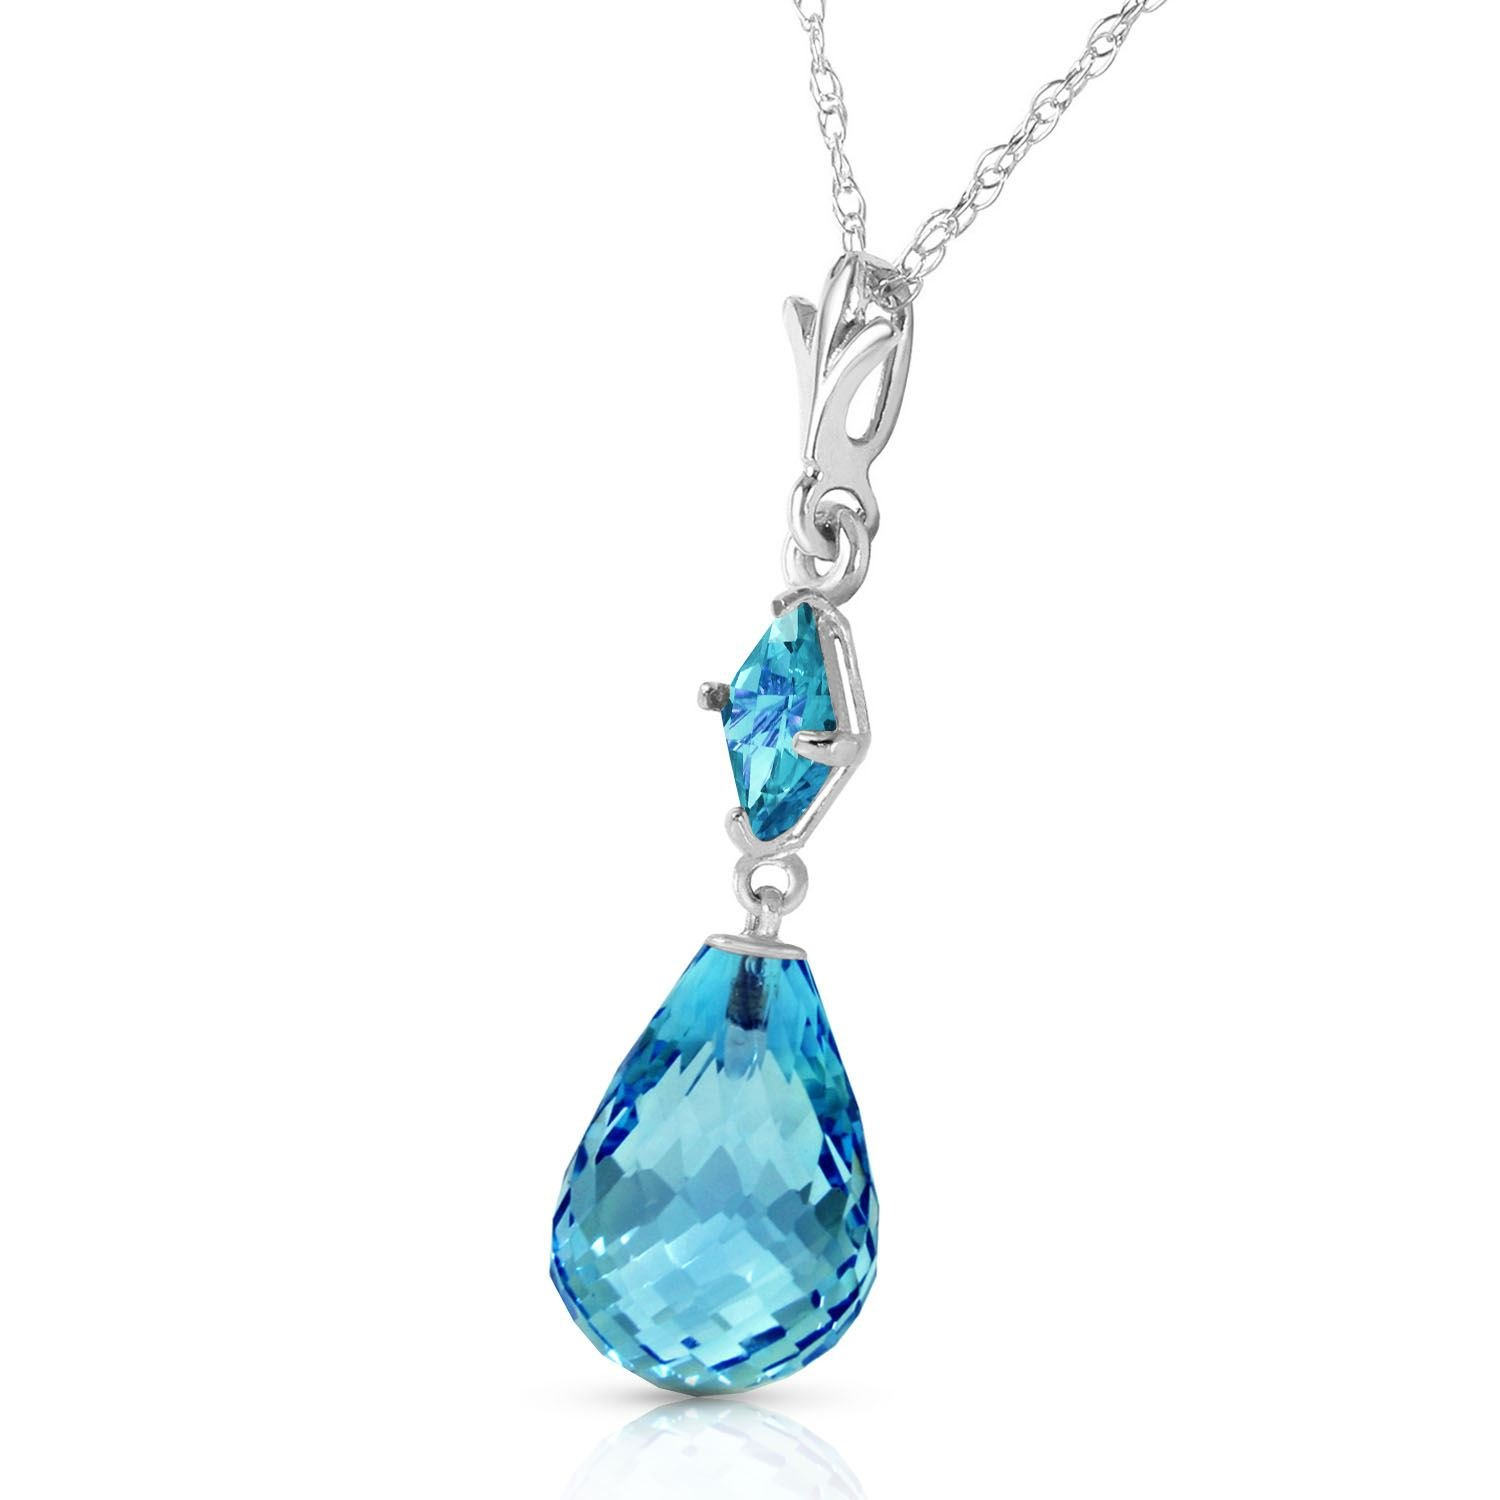 ALARRI 5.5 Carat 14K Solid White Gold Today We Laugh Blue Topaz Necklace with 20 Inch Chain Length